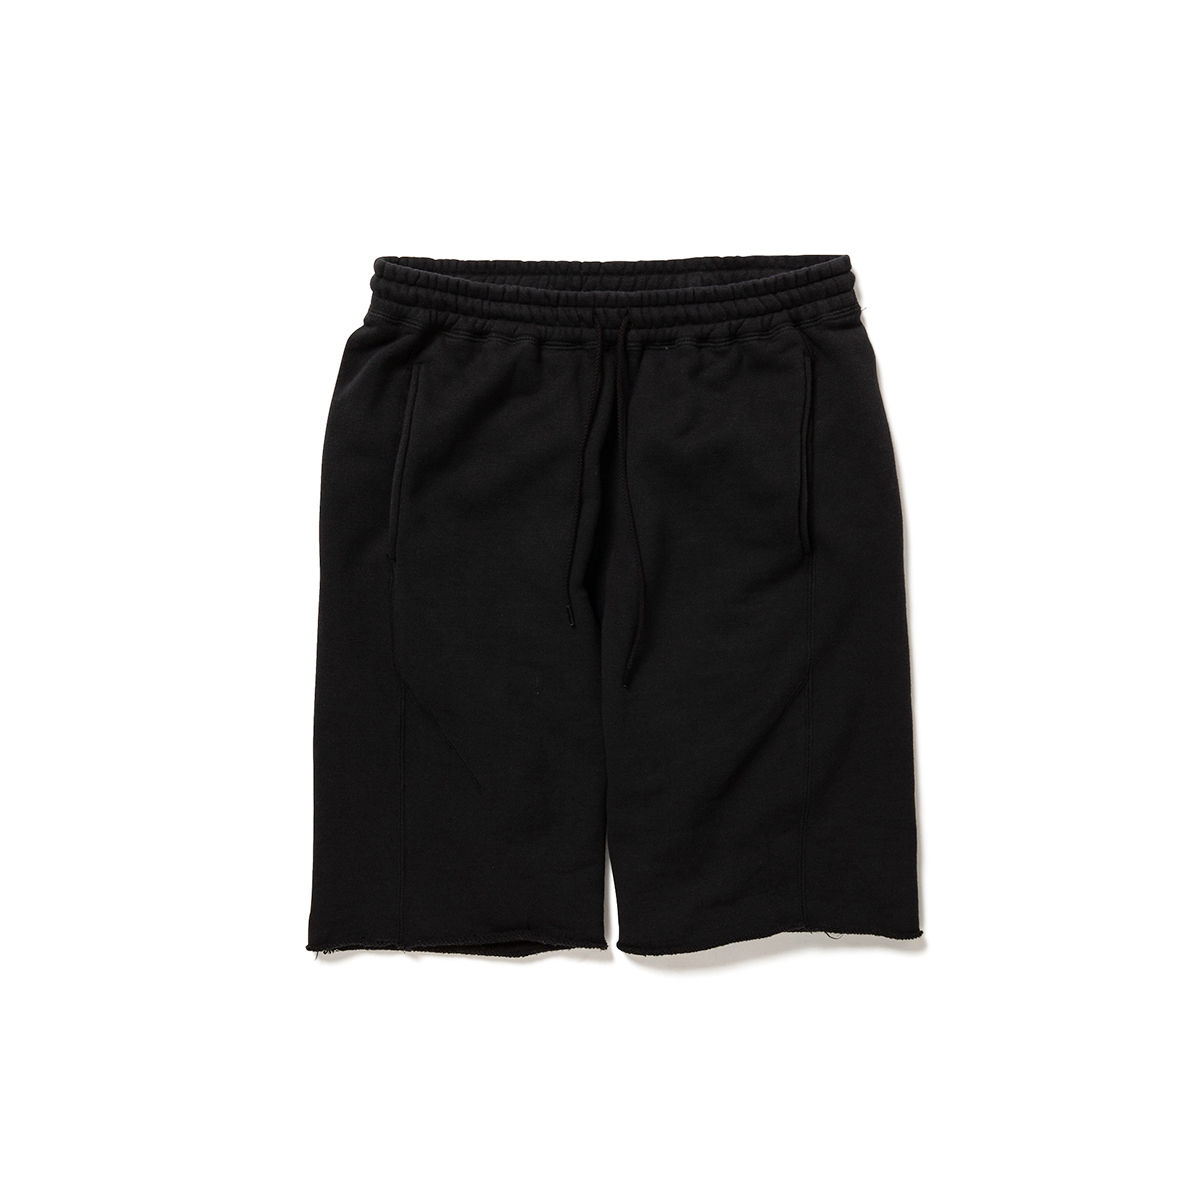 nonnative / COACH EASY SHORTS C/N SWEAT CORDURA® (Black)正面